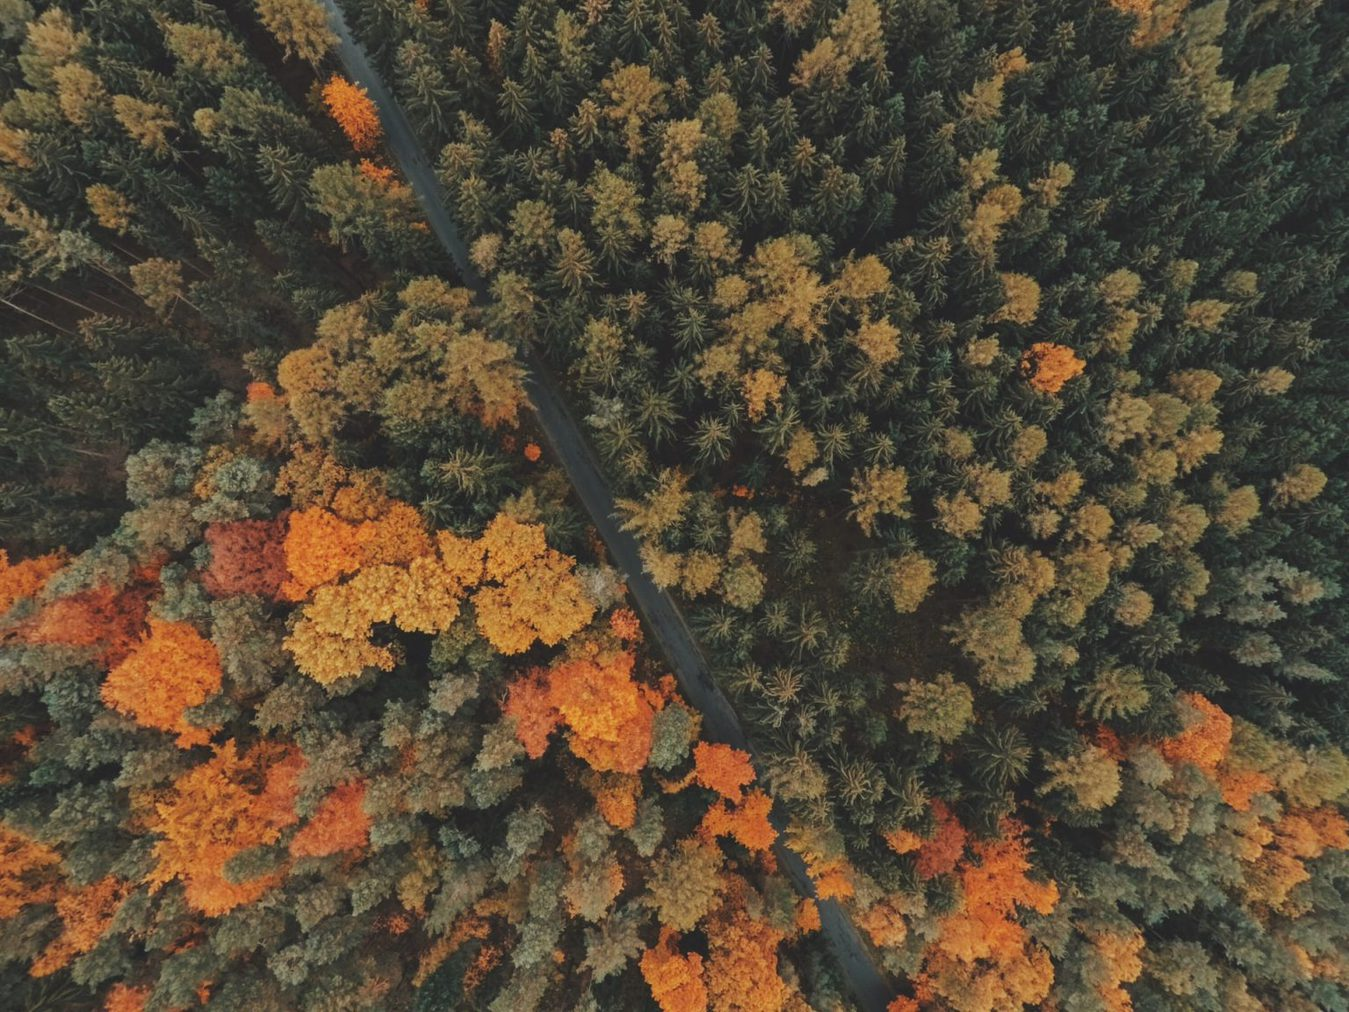 Autumn forest colors - top view